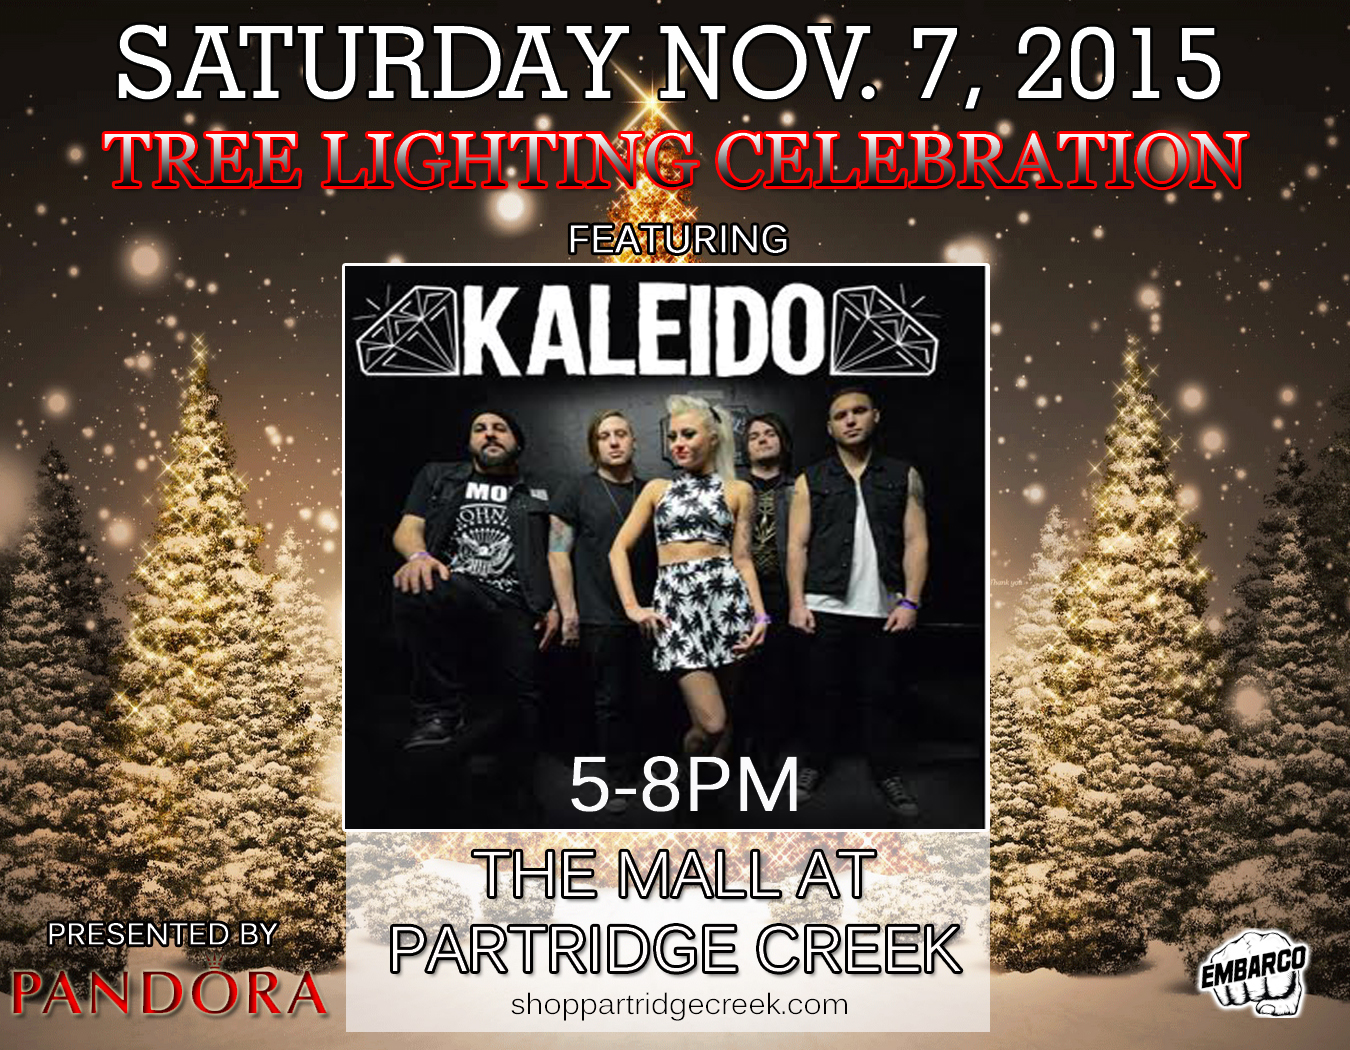 ... Partridge Creek Mall Tree Lighting Ceremony! Bring the Family and Start the Holiday Season off Right! & Kaleido|Partridge Creek Mall 7pm-10pm | Embarco Entertainment